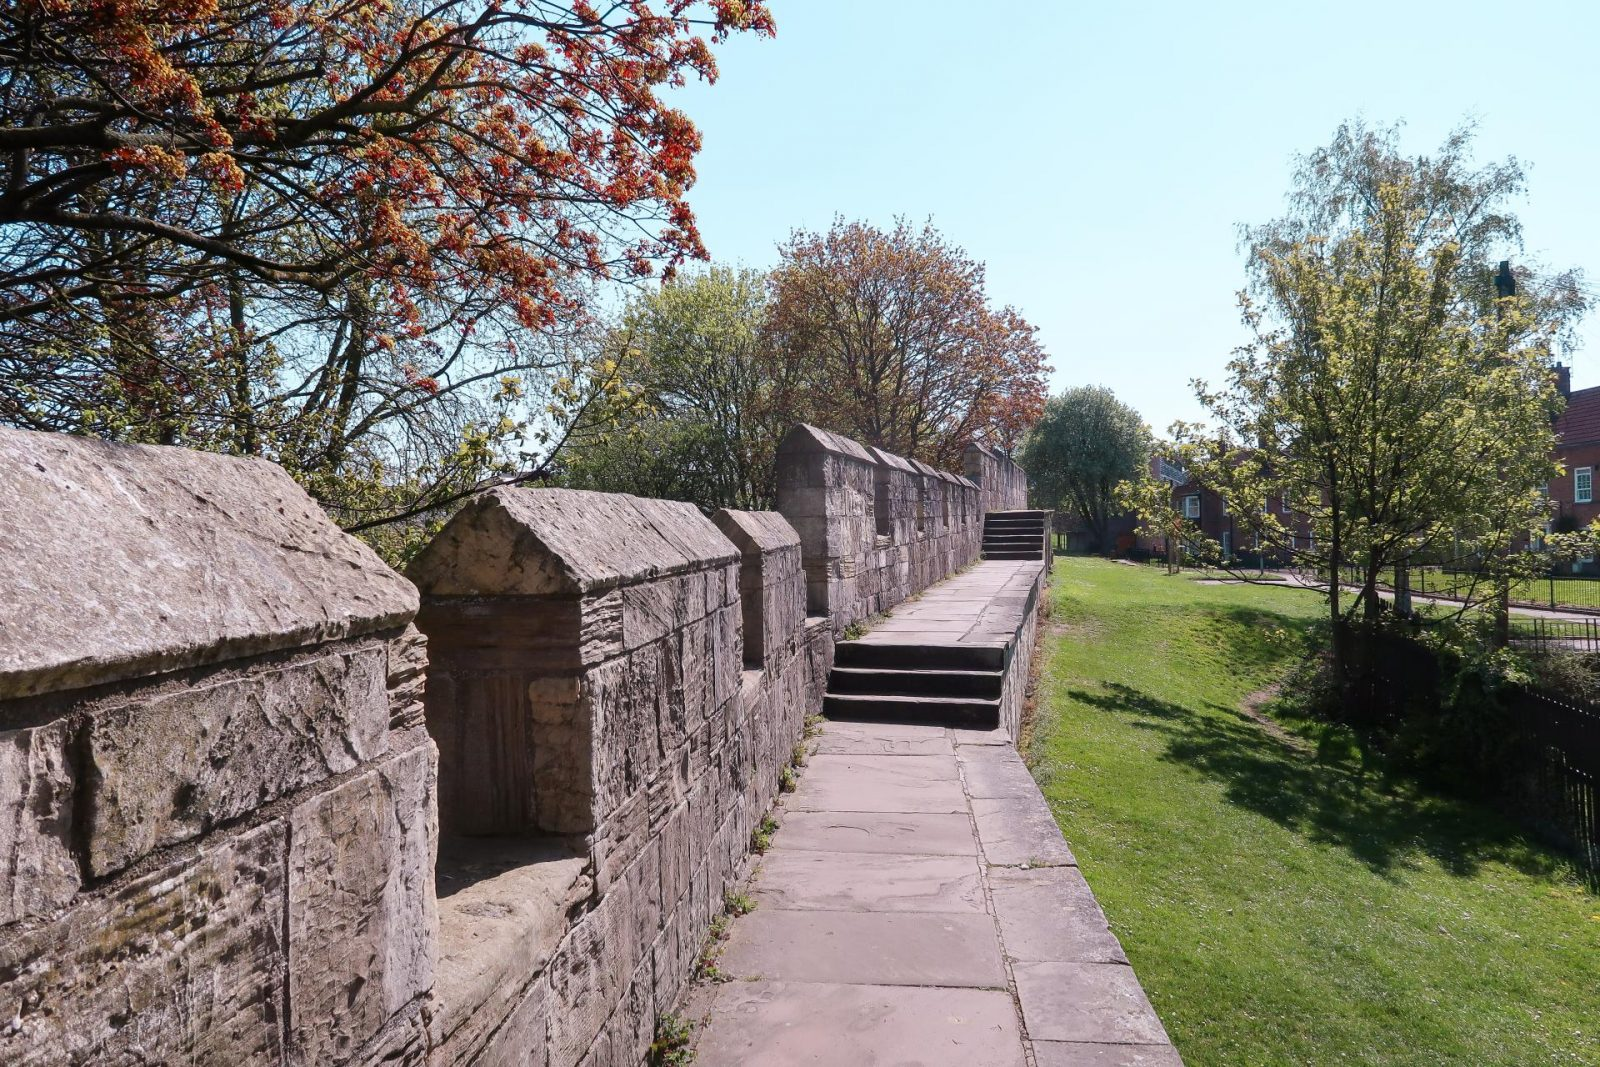 A DAY IN YORK - THE CITY WALLS